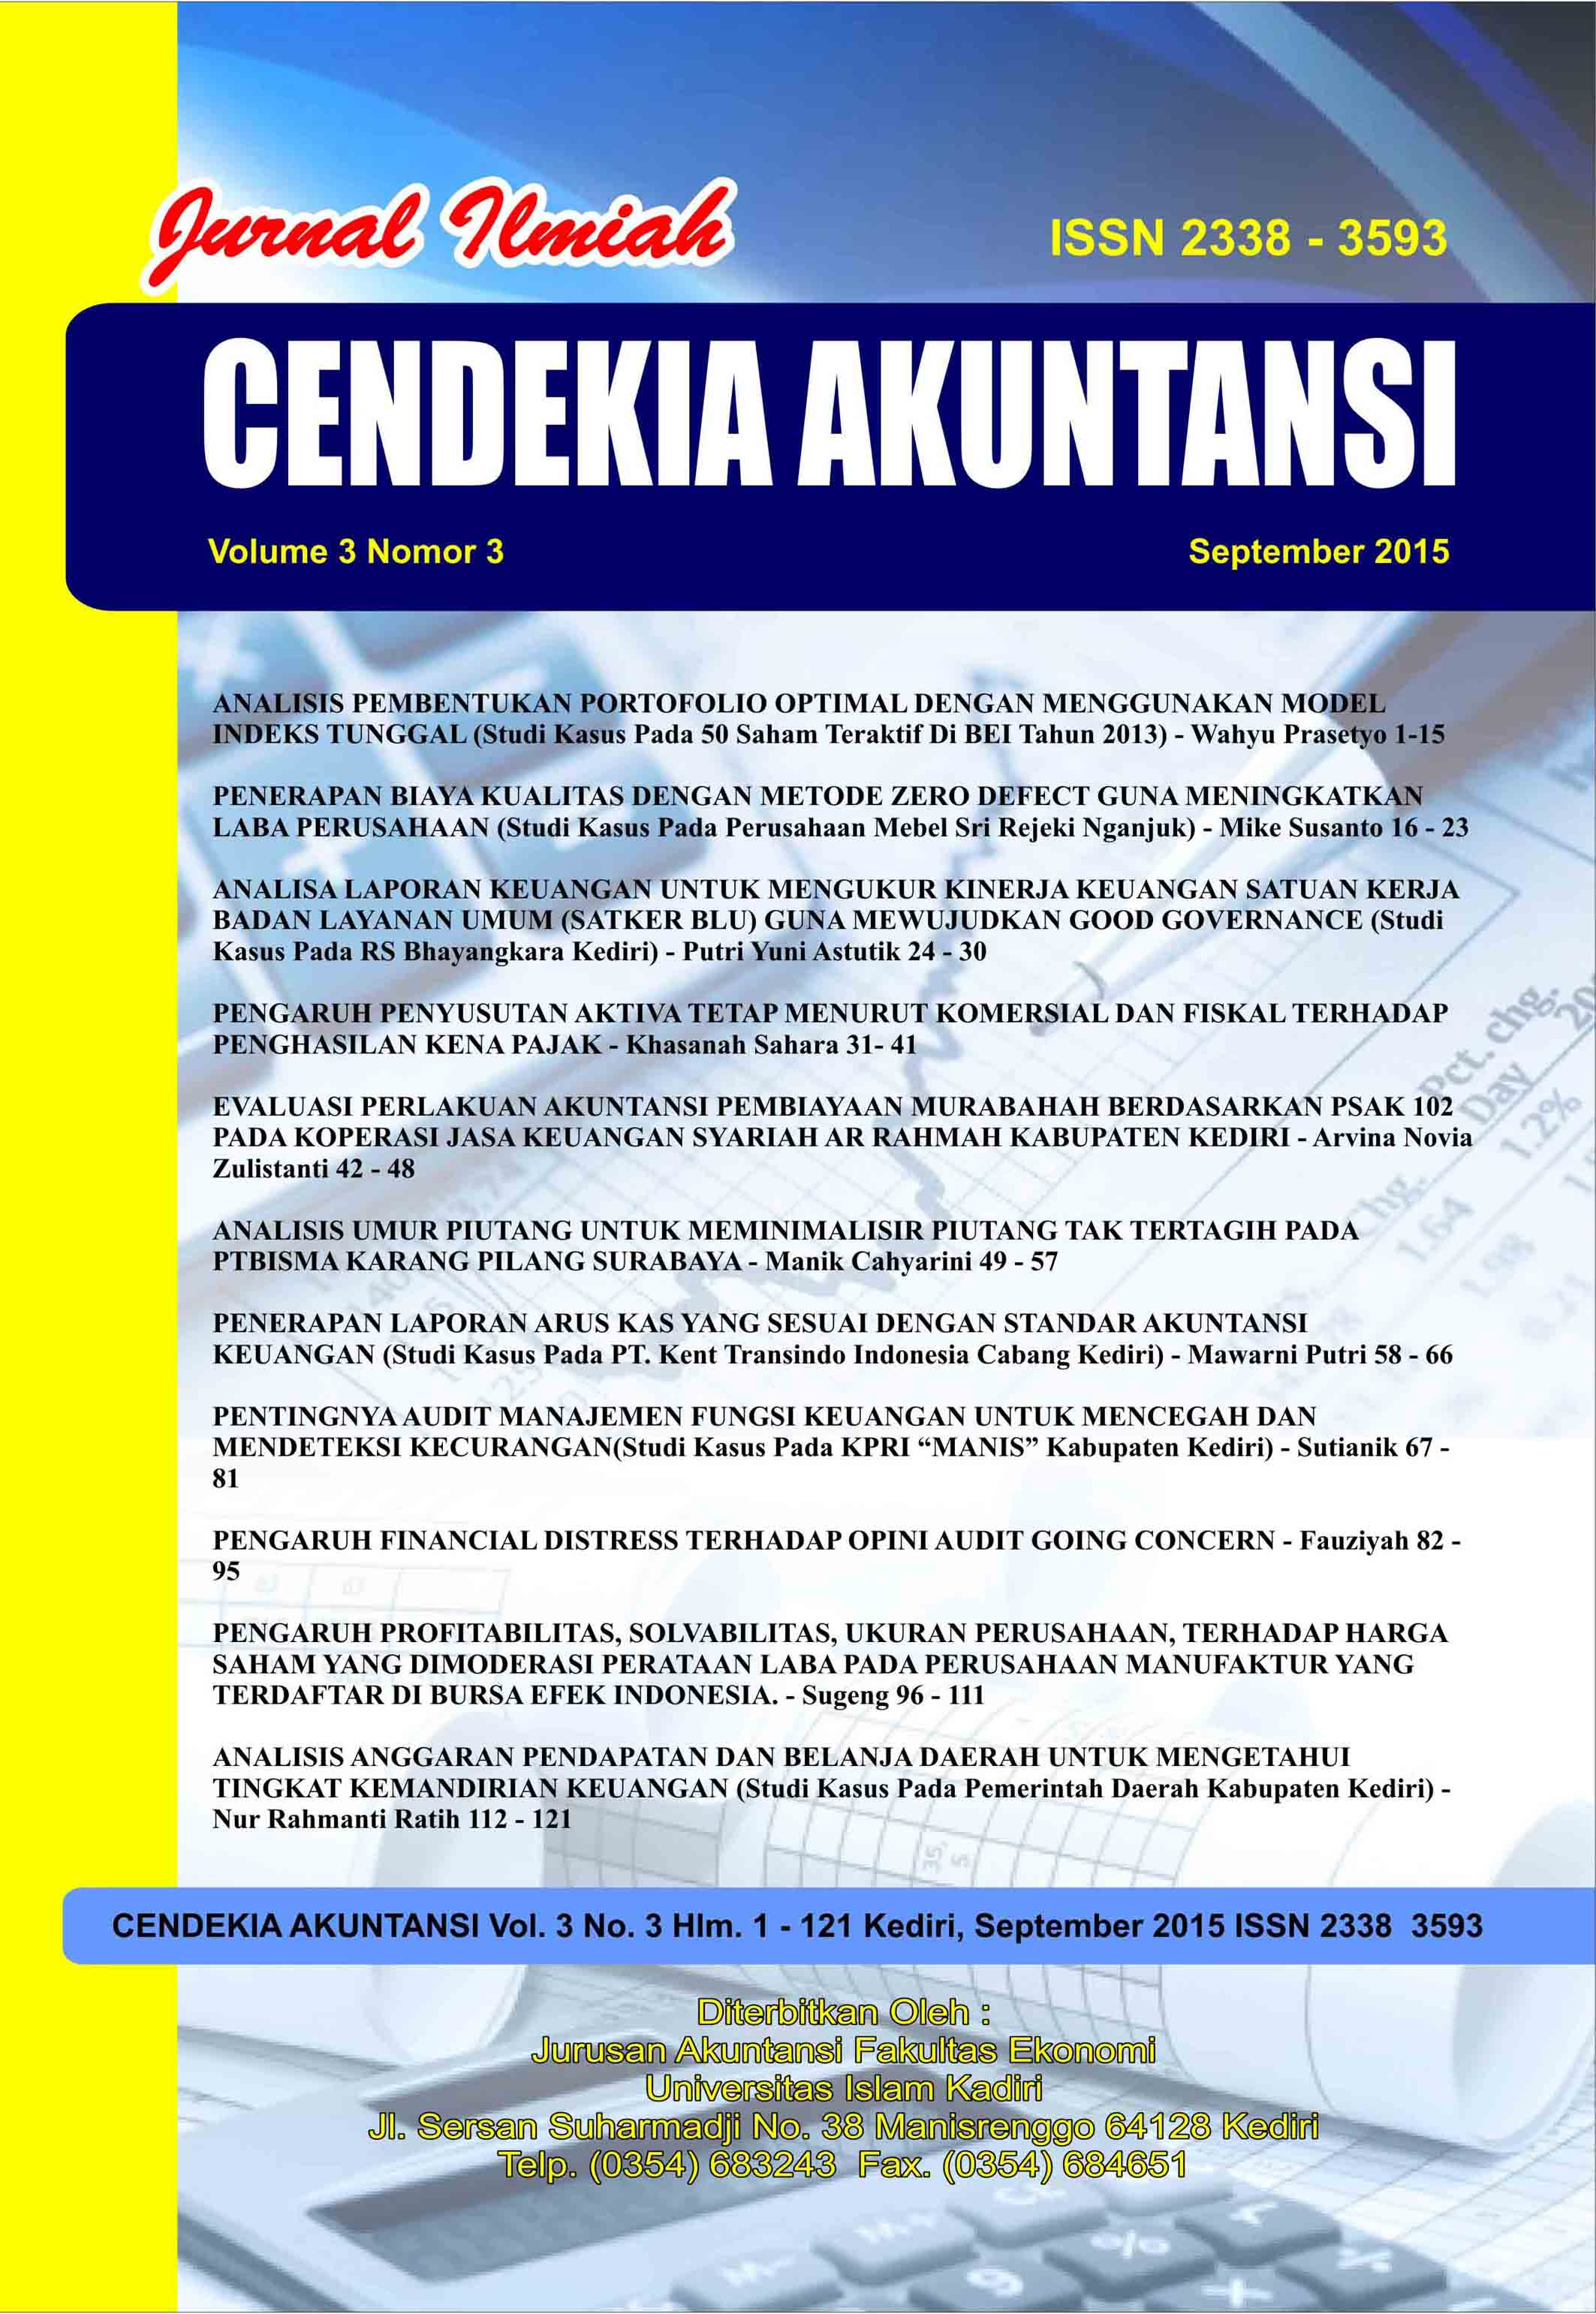 Cendekia Akuntansi Vol 3 No 3 Sep 2015